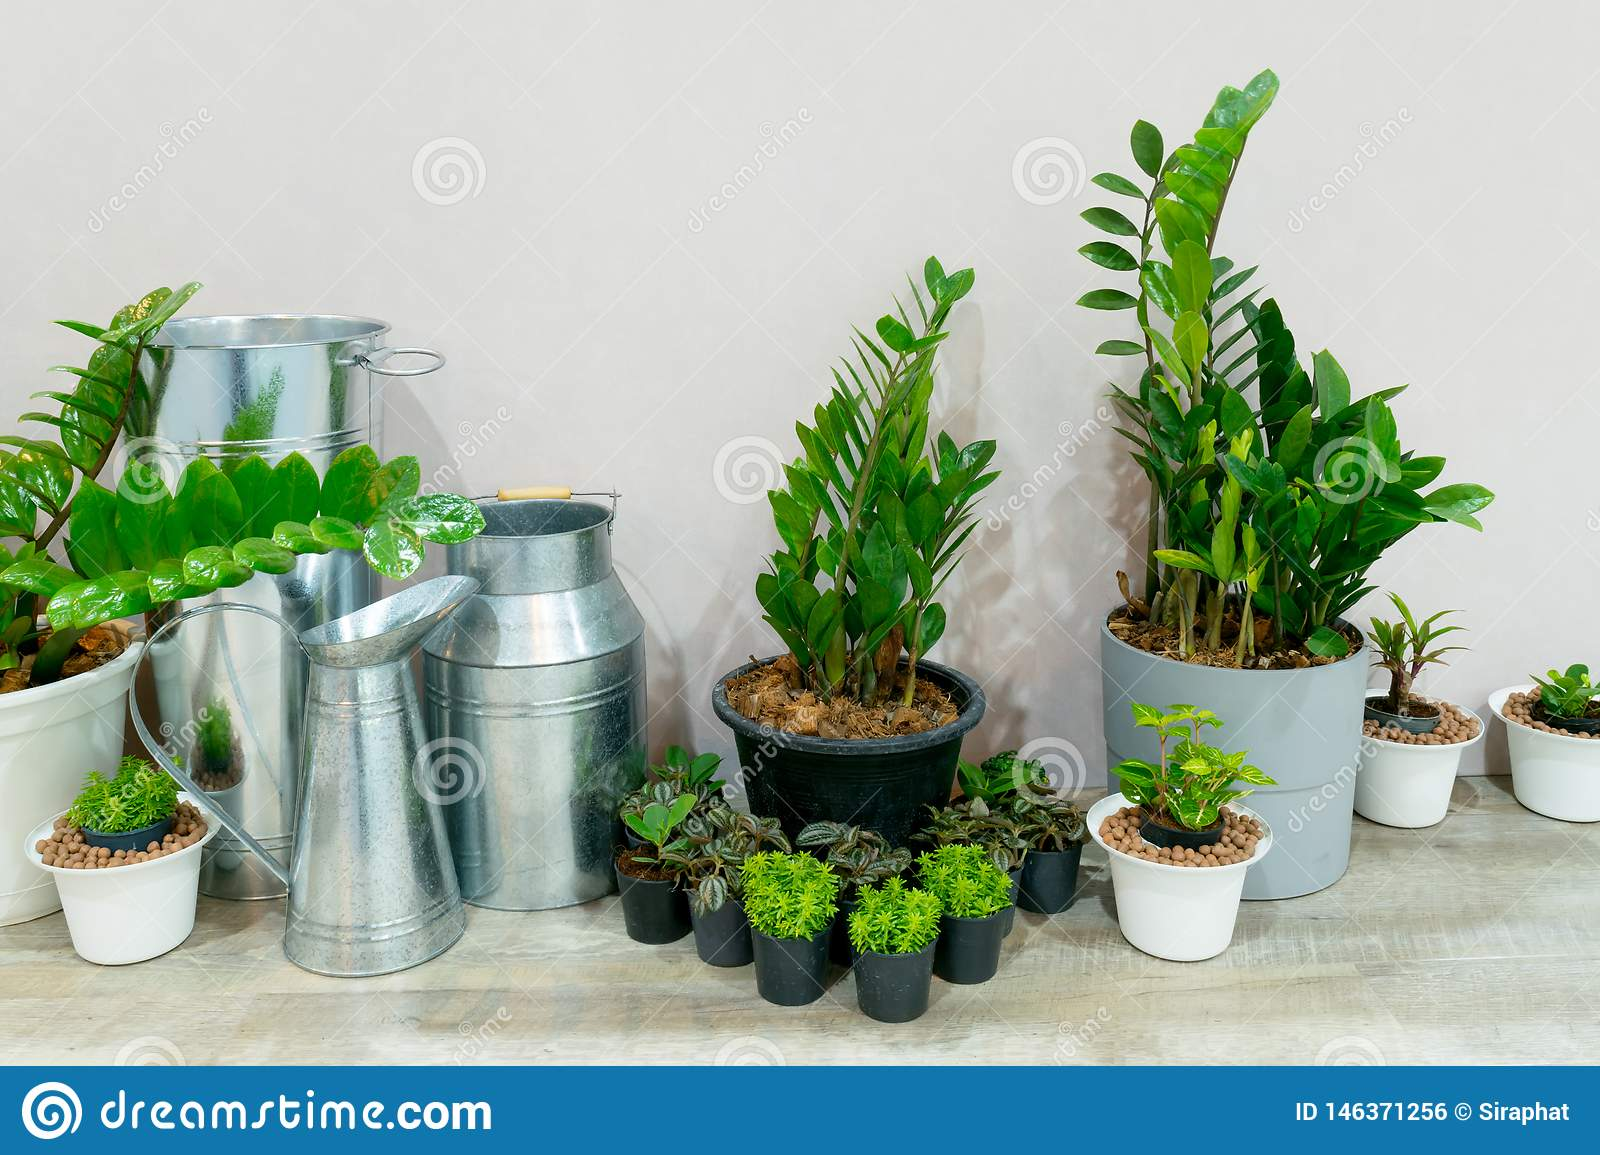 House Plants In Living Room Indoor Plant For Decorating The Room Stock Photo Image Of Beautiful Spring 146371256